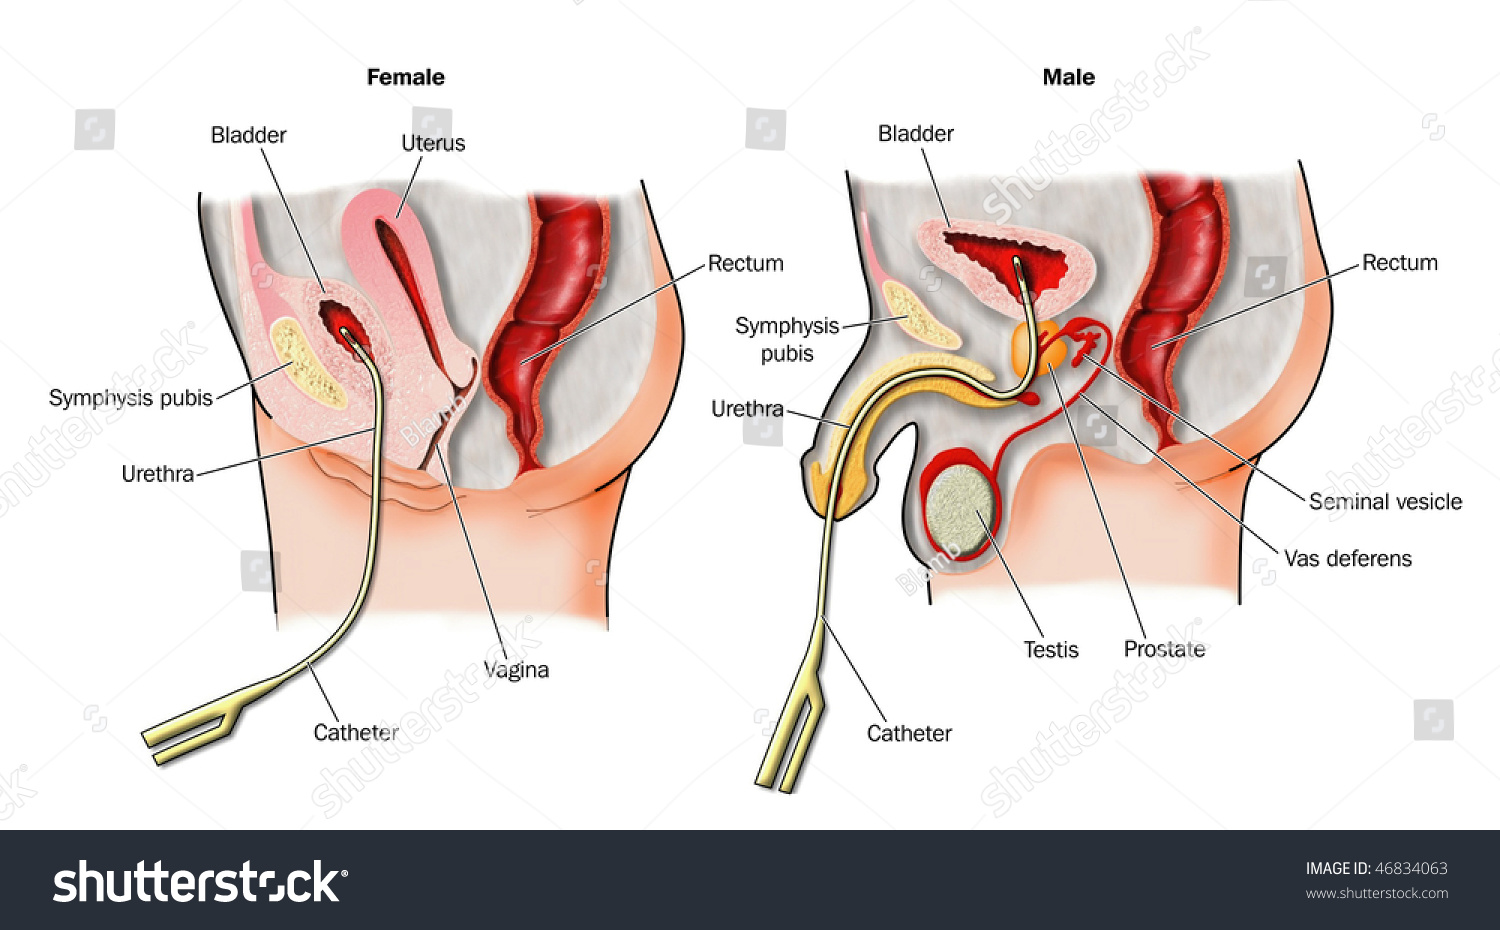 Urinary Catheters Situ Labeled Stock Illustration 46834063 ...